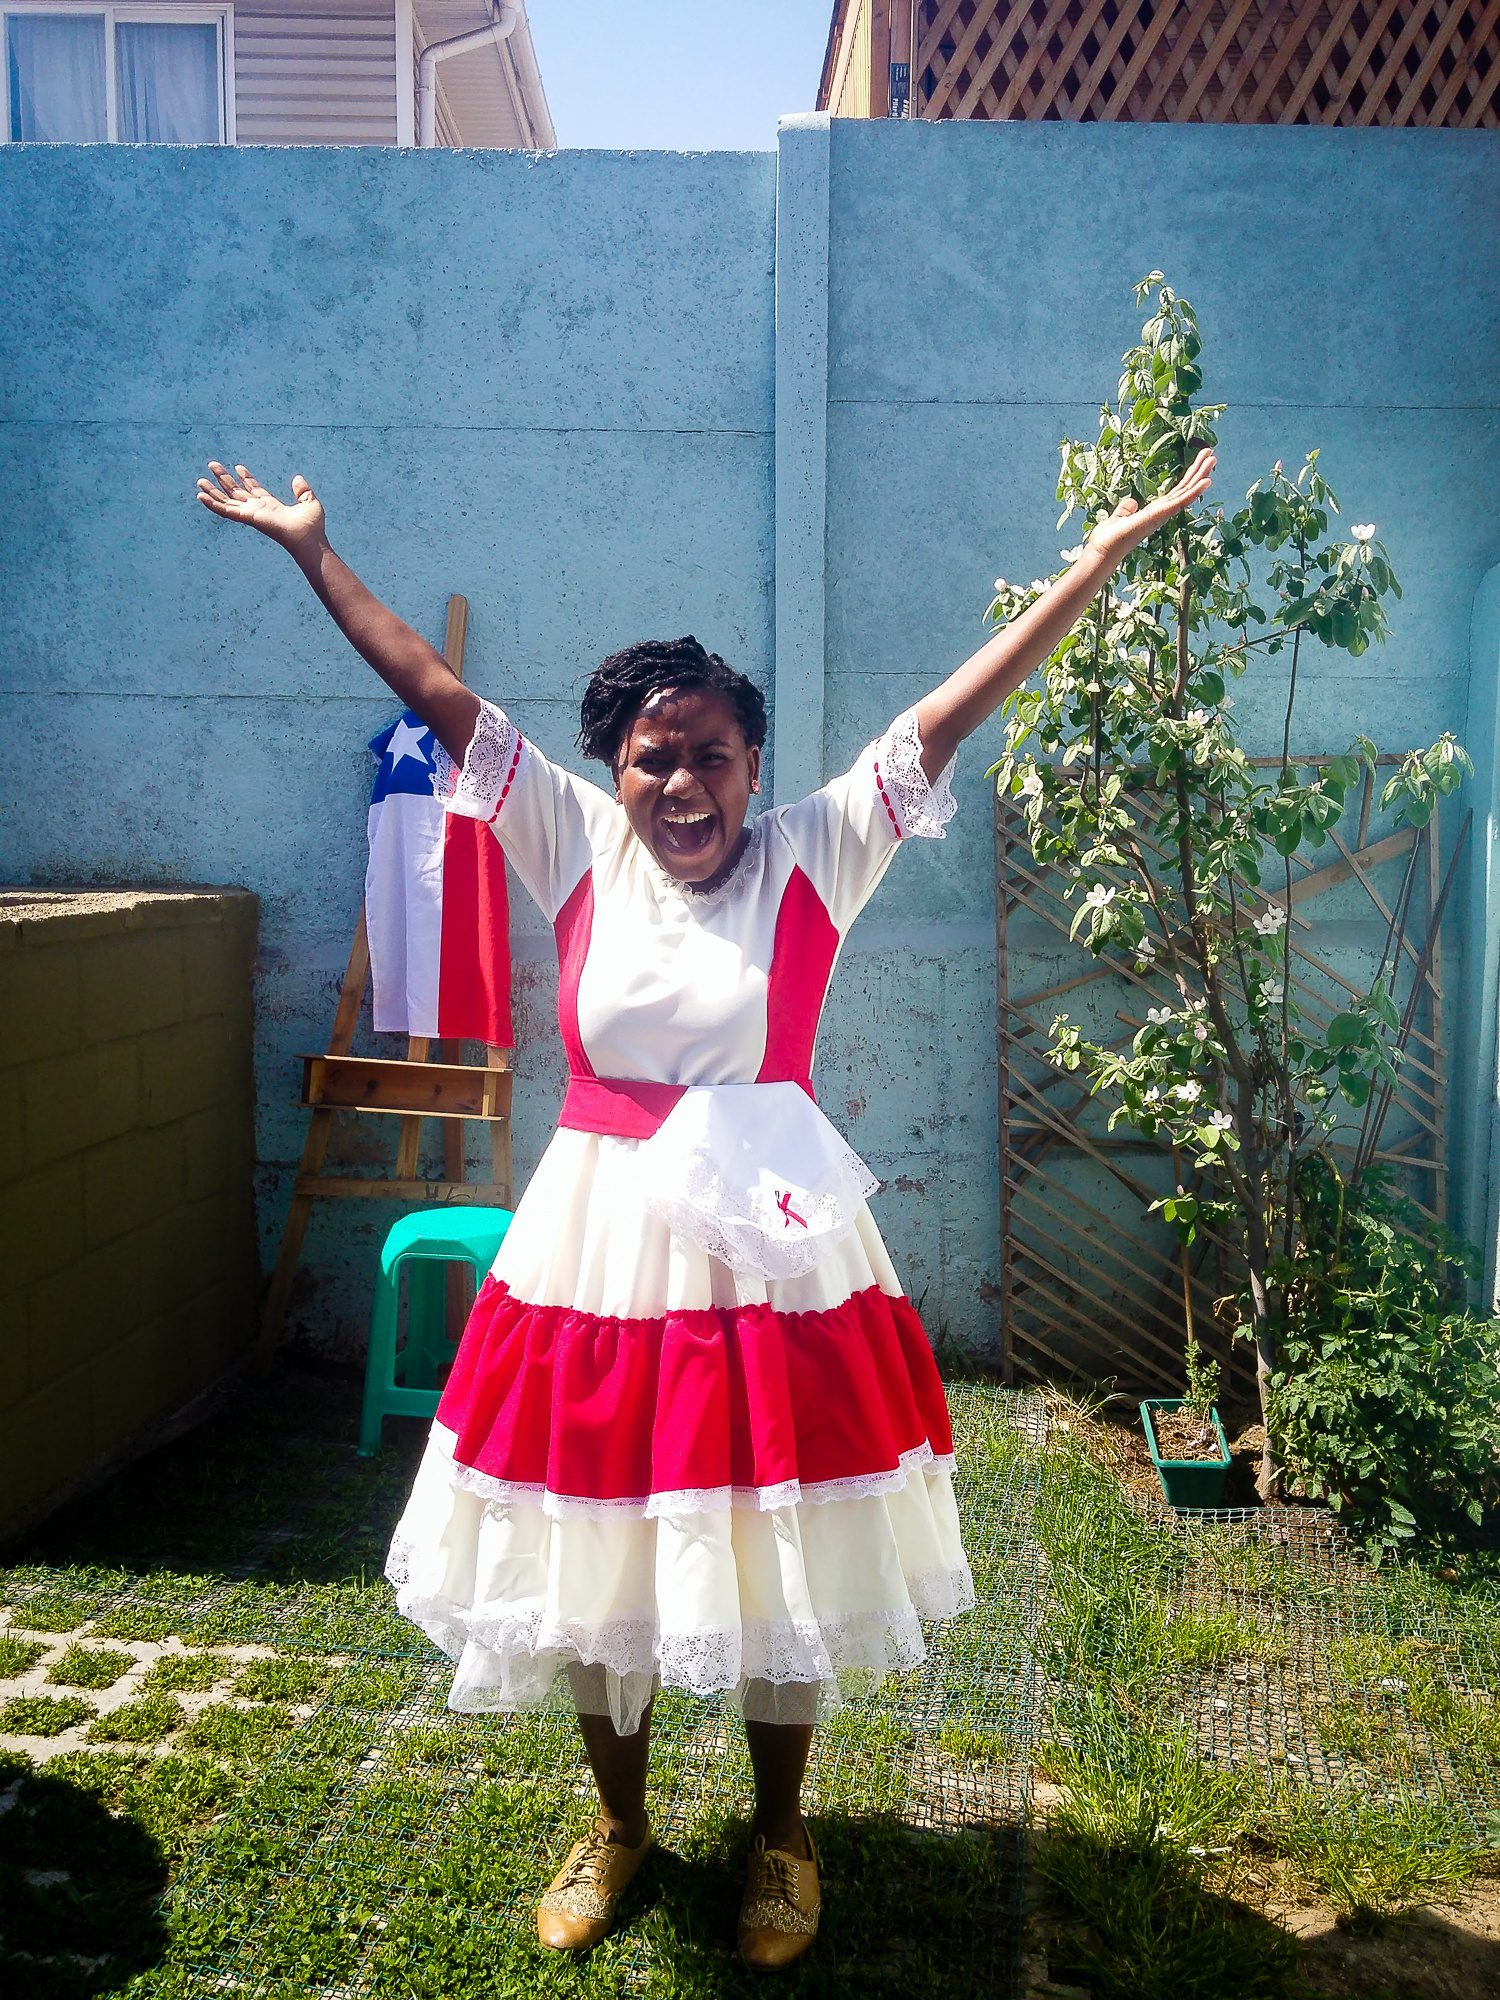 Celebrating Chile's Independence Day in September (in local dress of a Cueca dancer courtesy of Steph's host brother's wife).